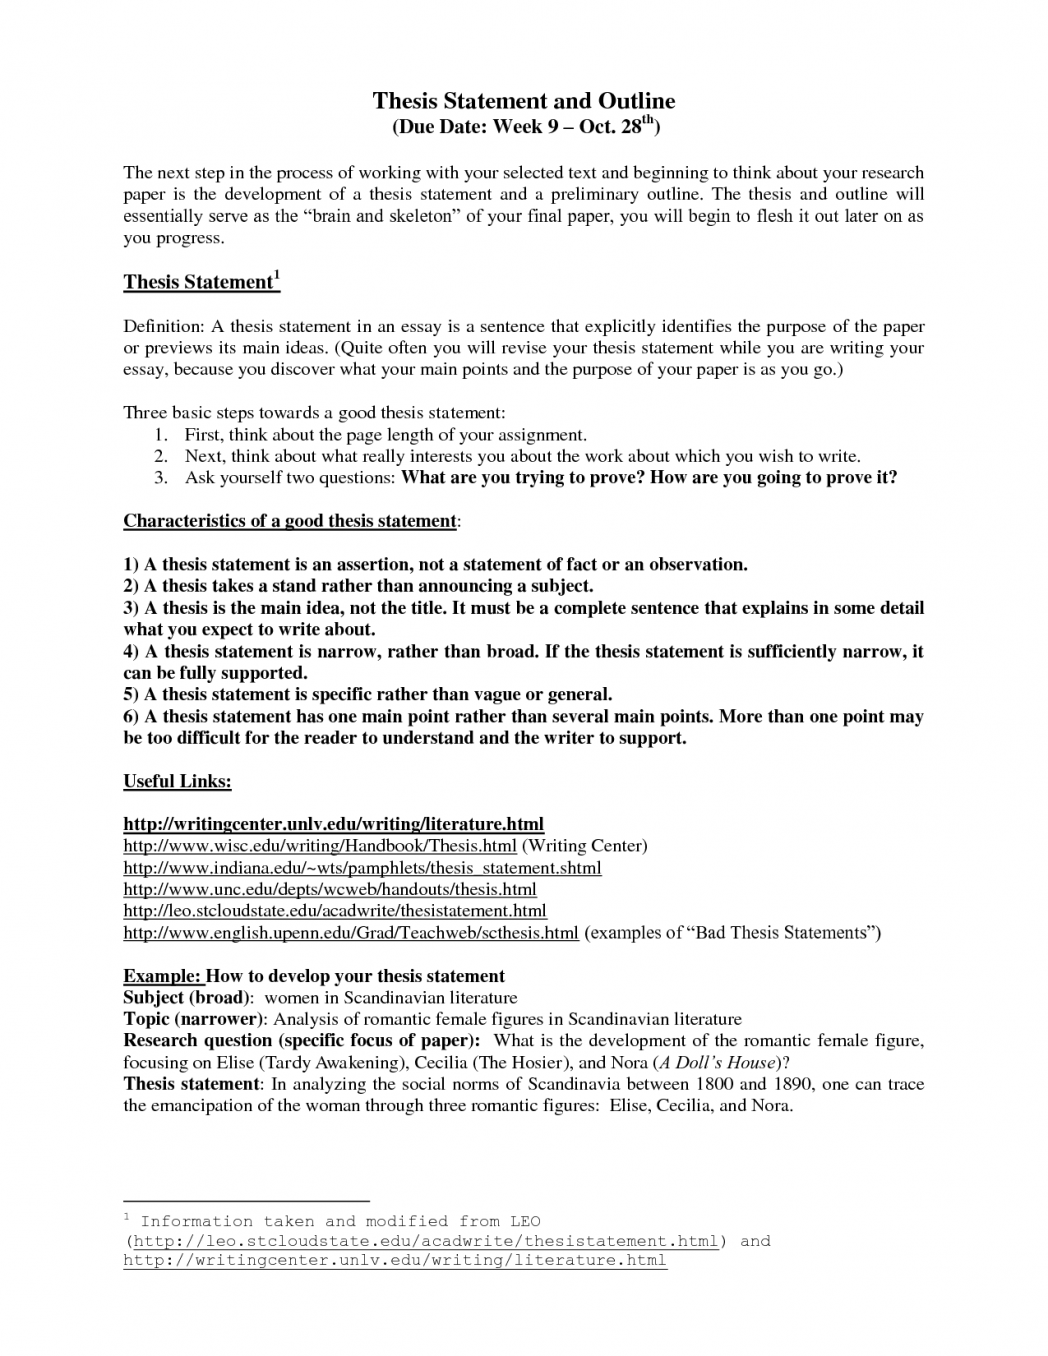 015 Thesis Statement Essay Sample Narrative Cover Letter Example Essays And Outline Template Wx8 Writing Powerpoint Ppt Step By 4th Grade About Being Judged Quizlet Someone Else Stirring Descriptive Examples Definition Structure Full